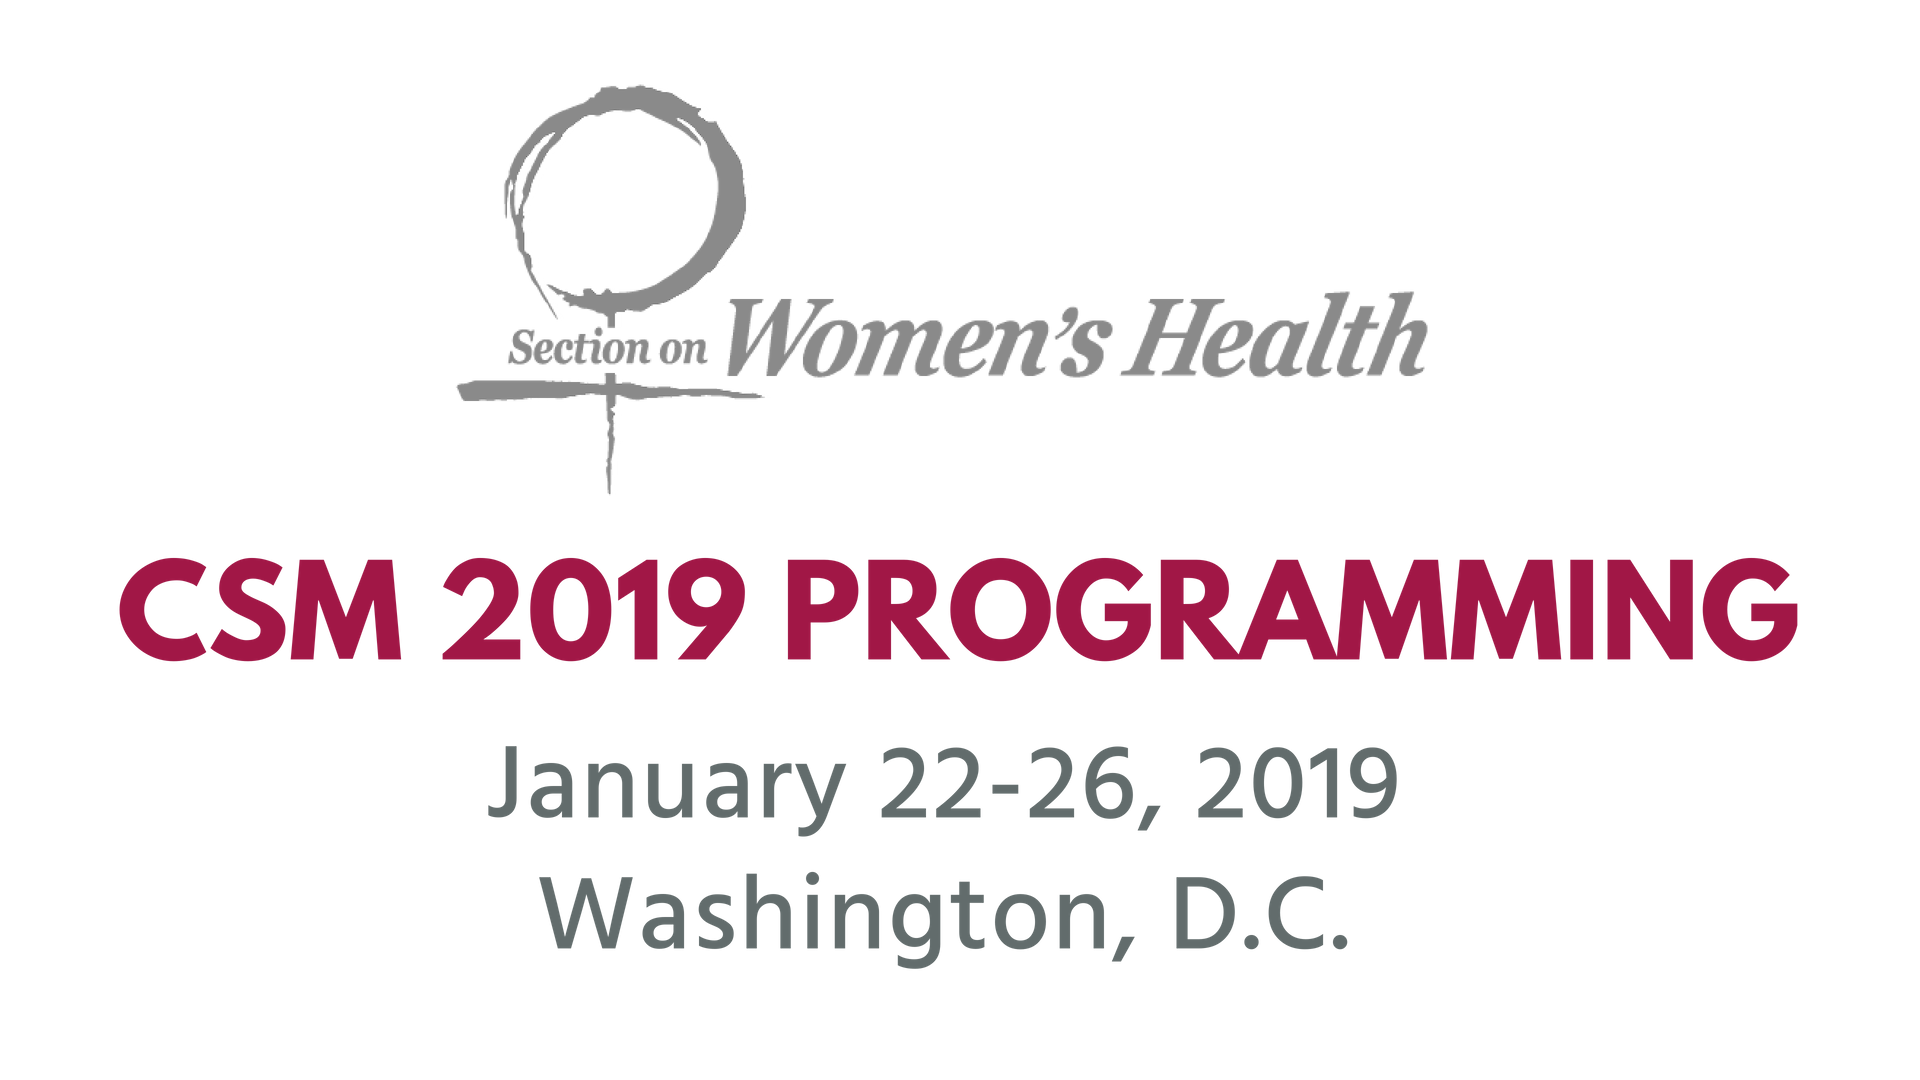 CSM 2019 SoWH Programming